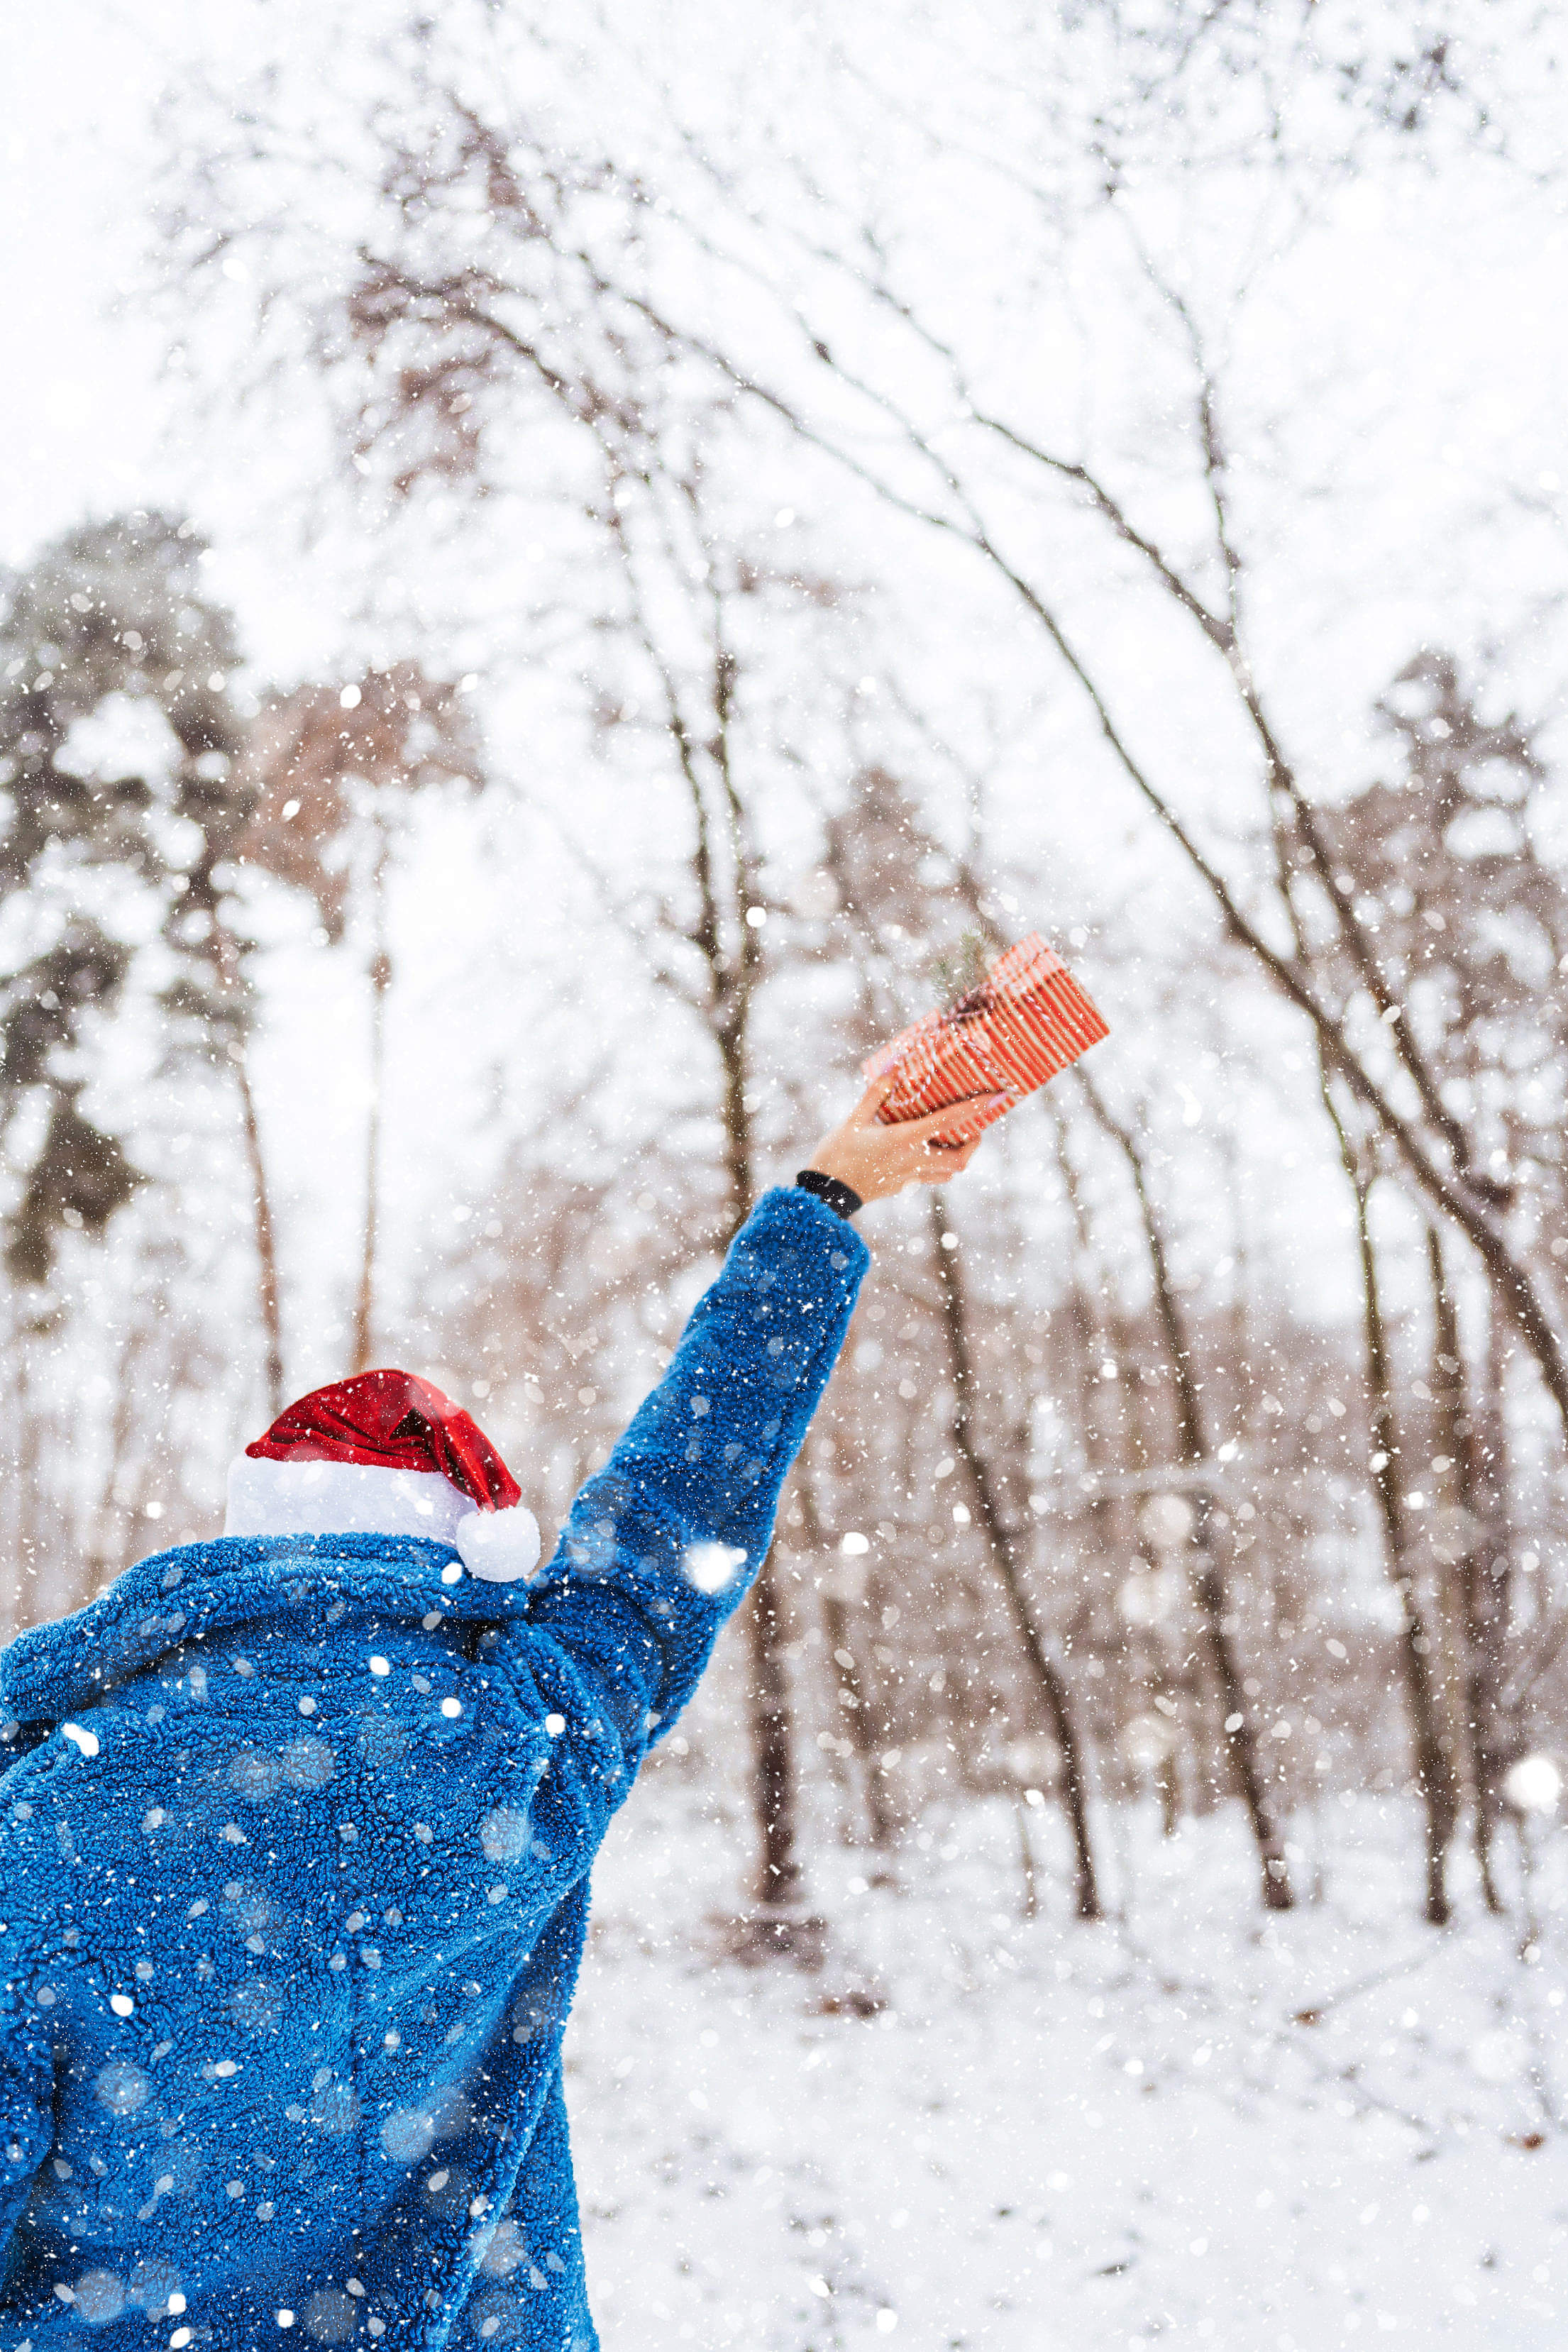 Woman Holding a Gift in a Snowy Landscape Free Stock Photo